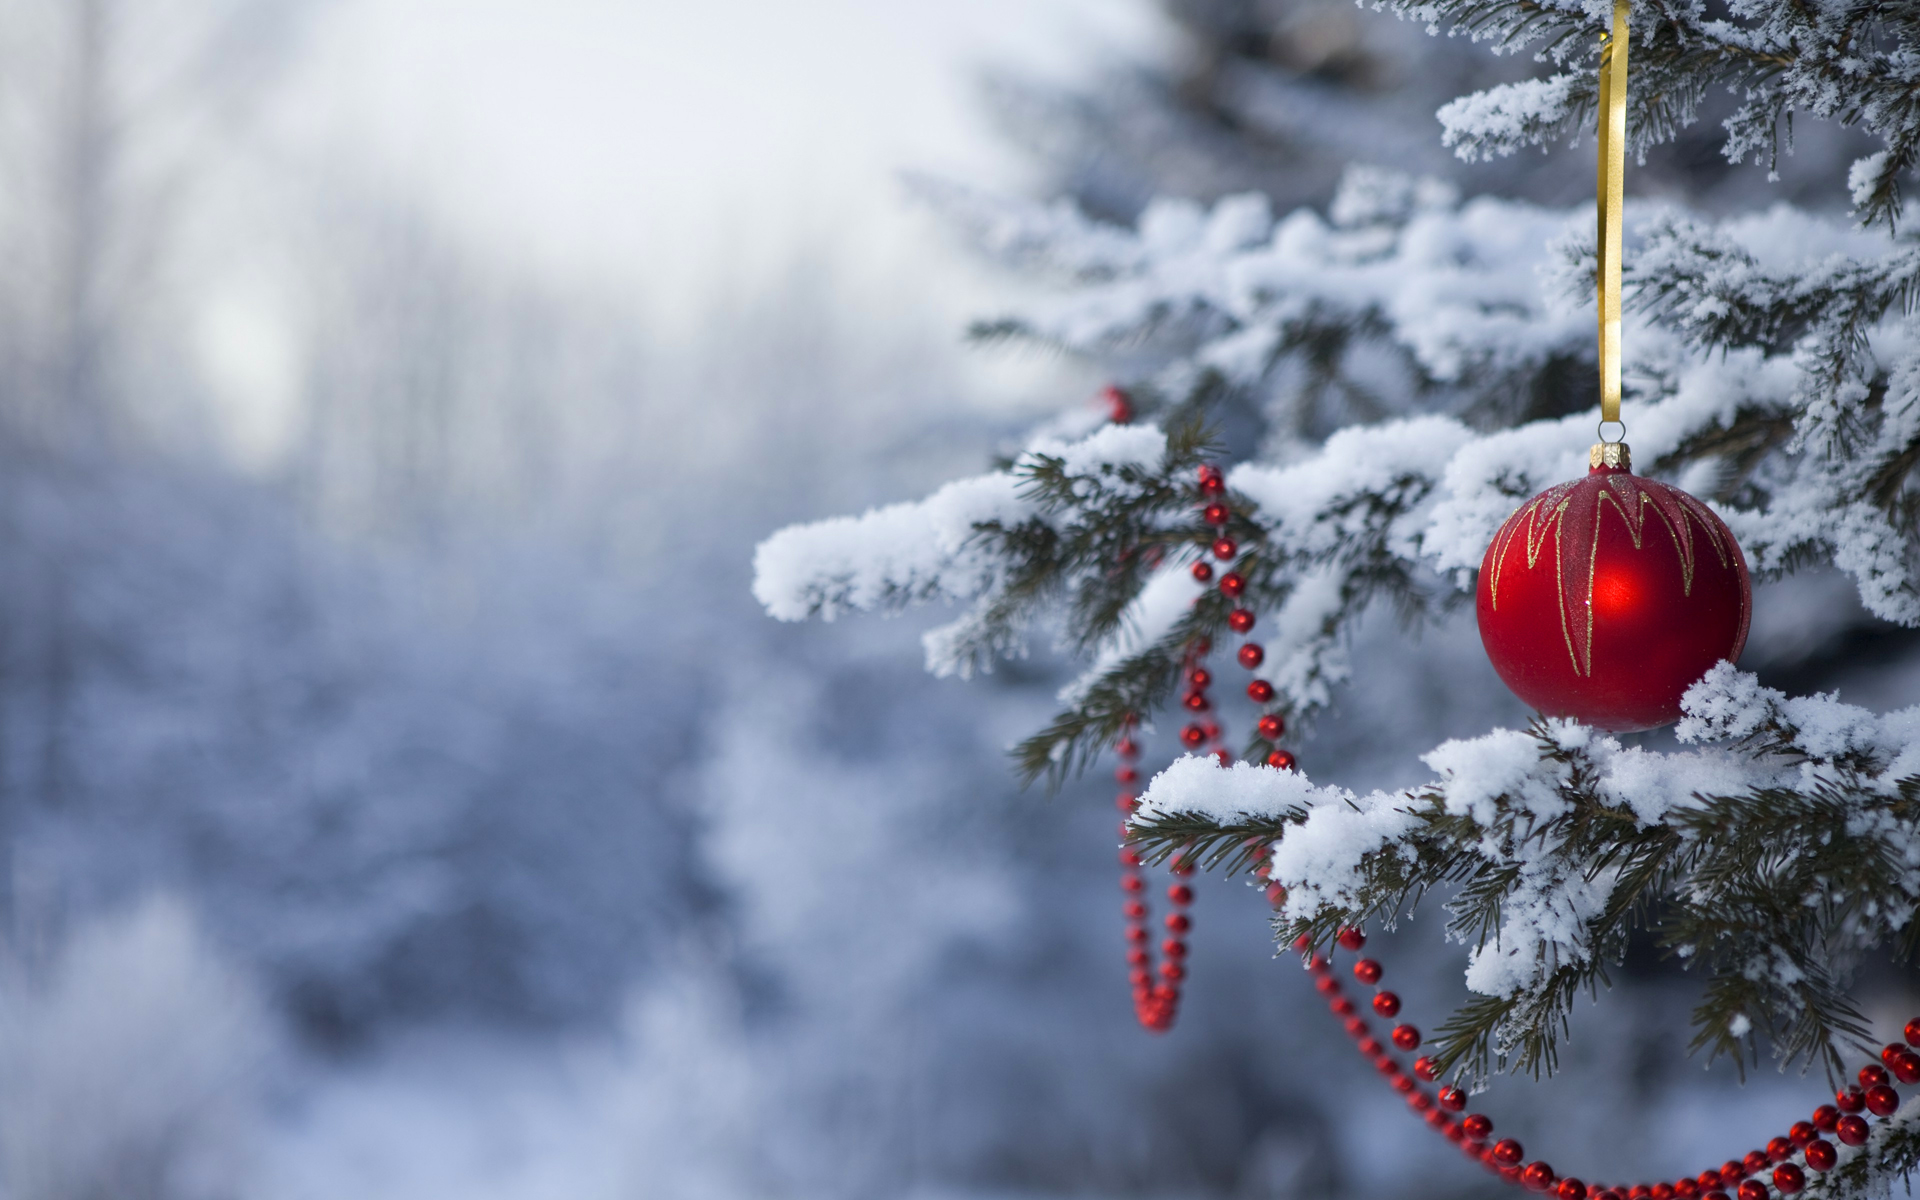 Winter Christmas Wallpaper Images Is Cool Wallpapers